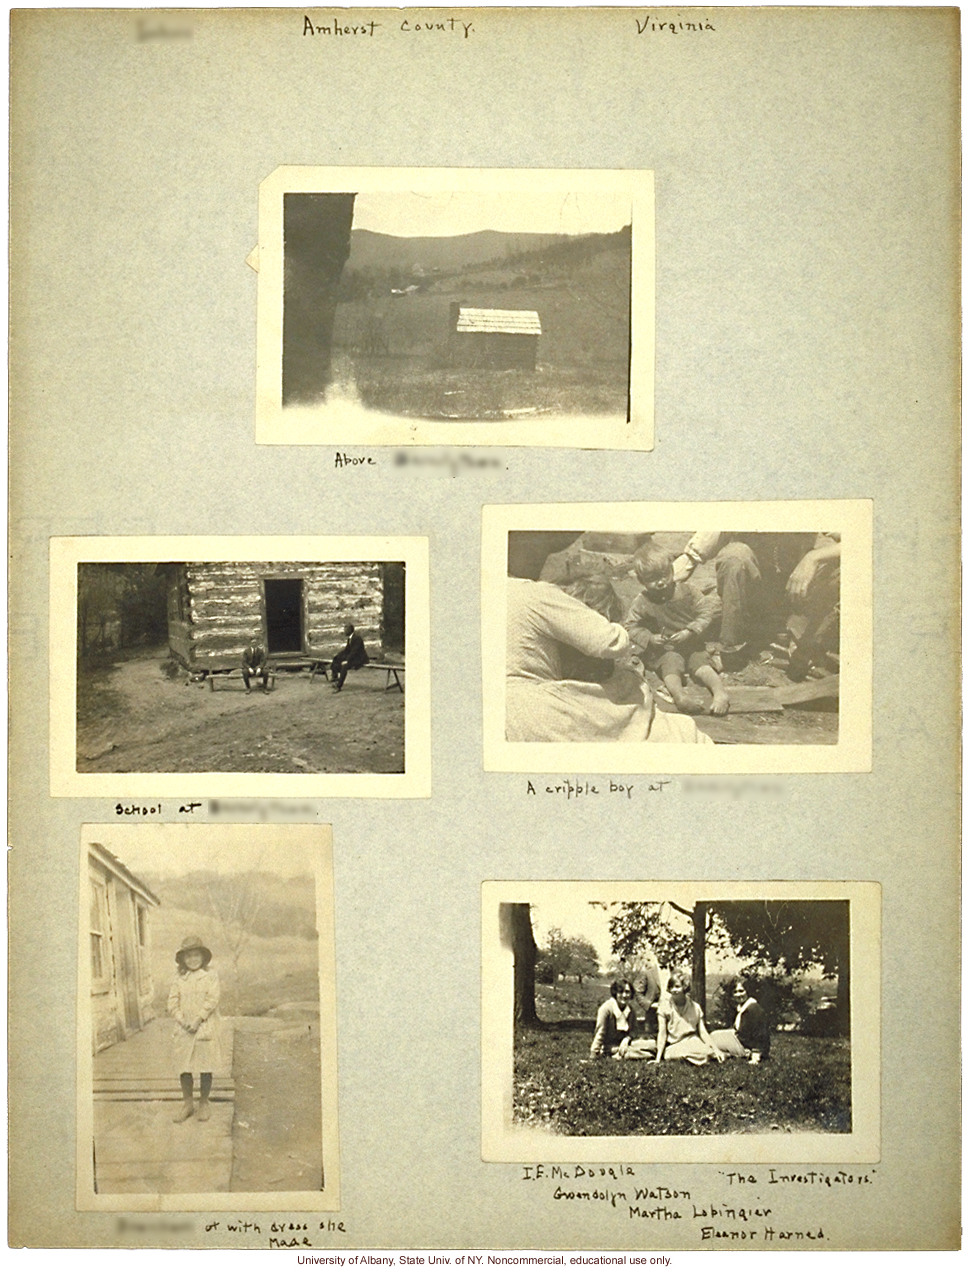 Field work for <i>Mongrel Virginians</i> in Amherst County, Virginia, Arthur Estabrook's scrapbook